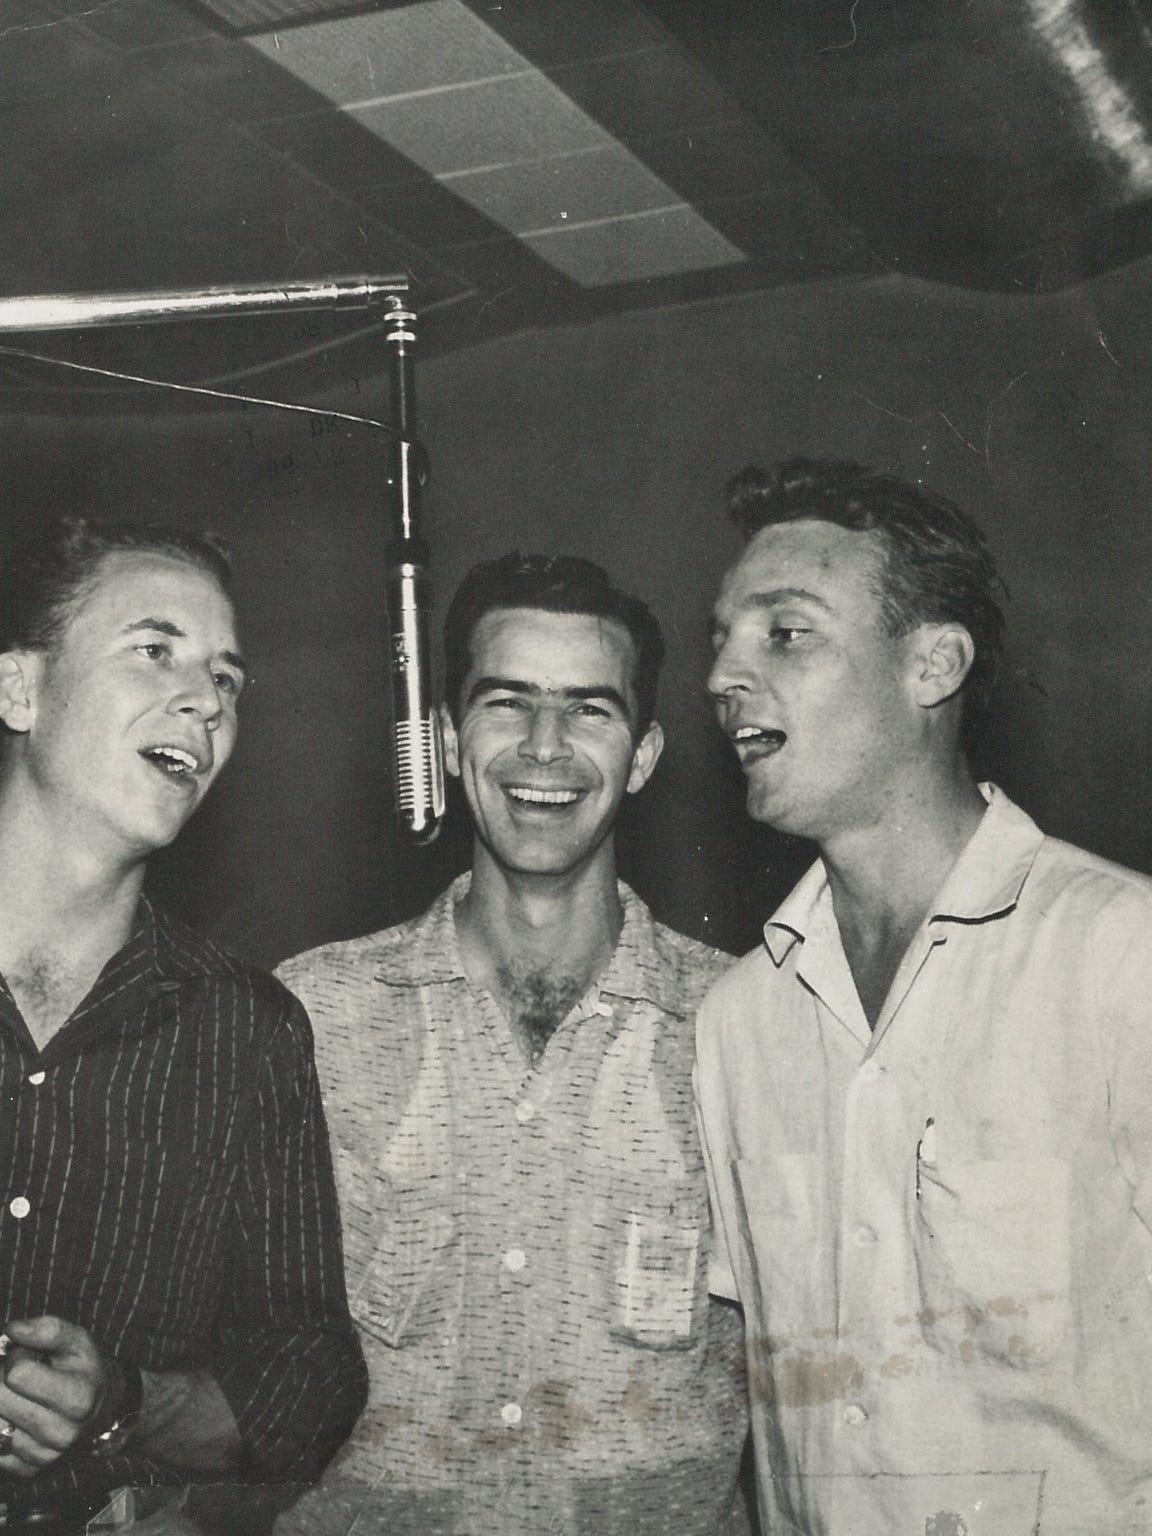 The Picks in 1957: From left, John Pickering, Bill Pickering and Bob Lapham.